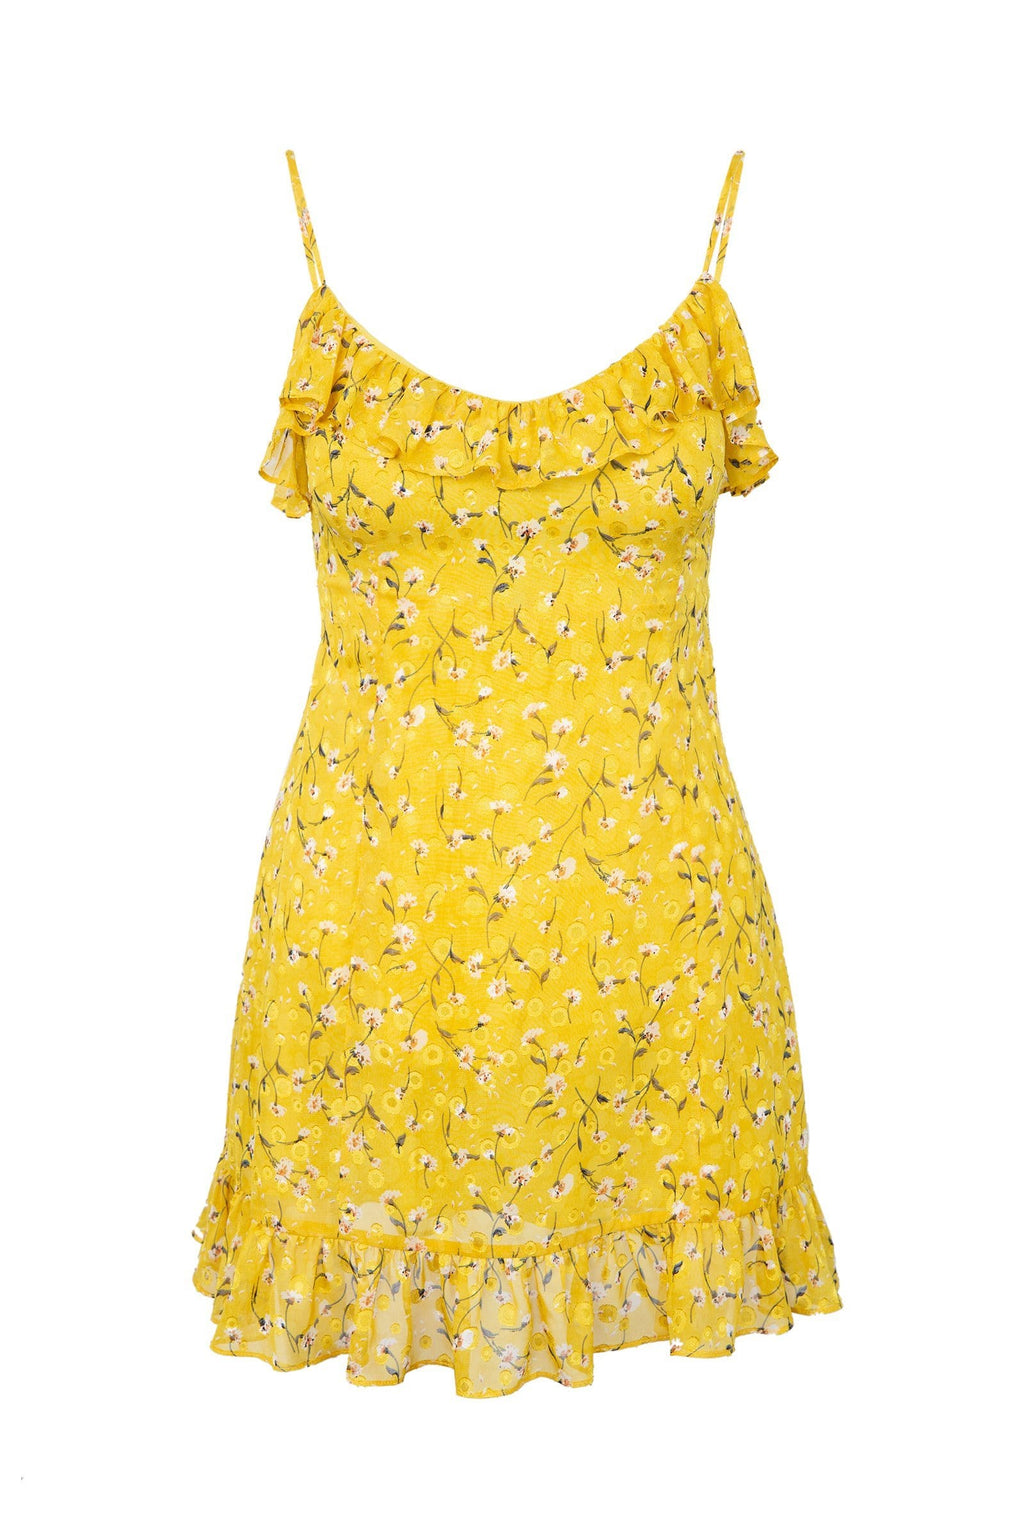 Yellow Summer Dress with Floral Print & Ruffled Hem by J.ING women's apparel